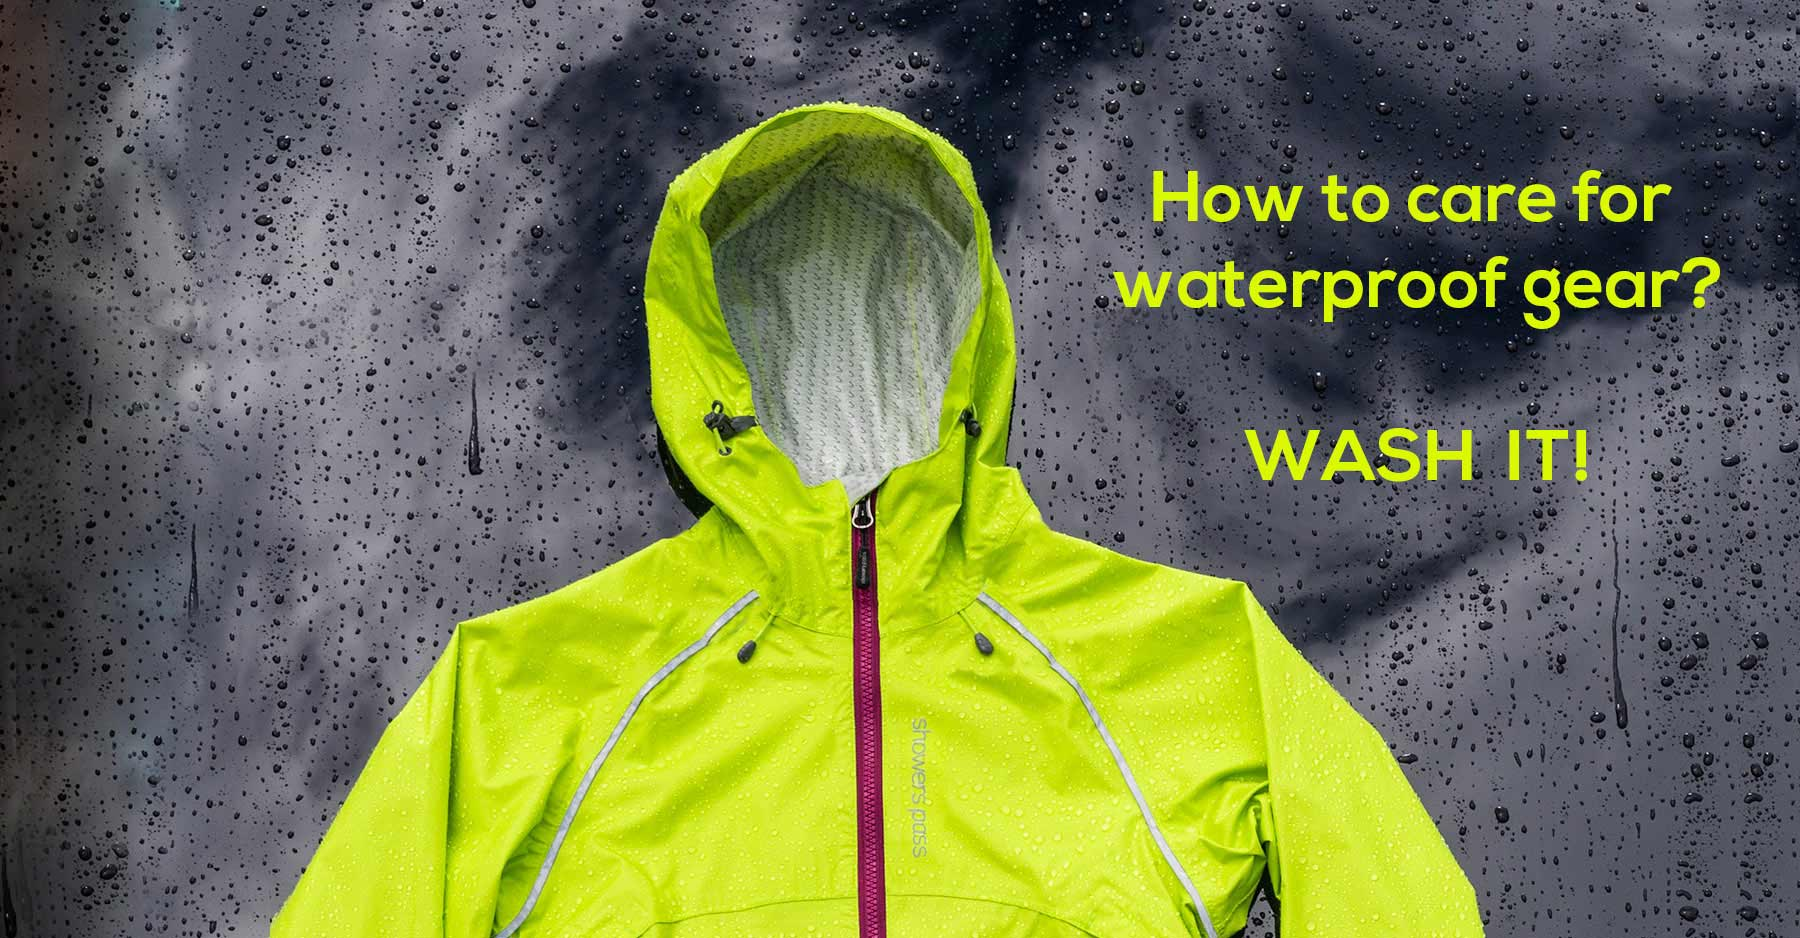 How to care for a waterproof jacket? Wash it!